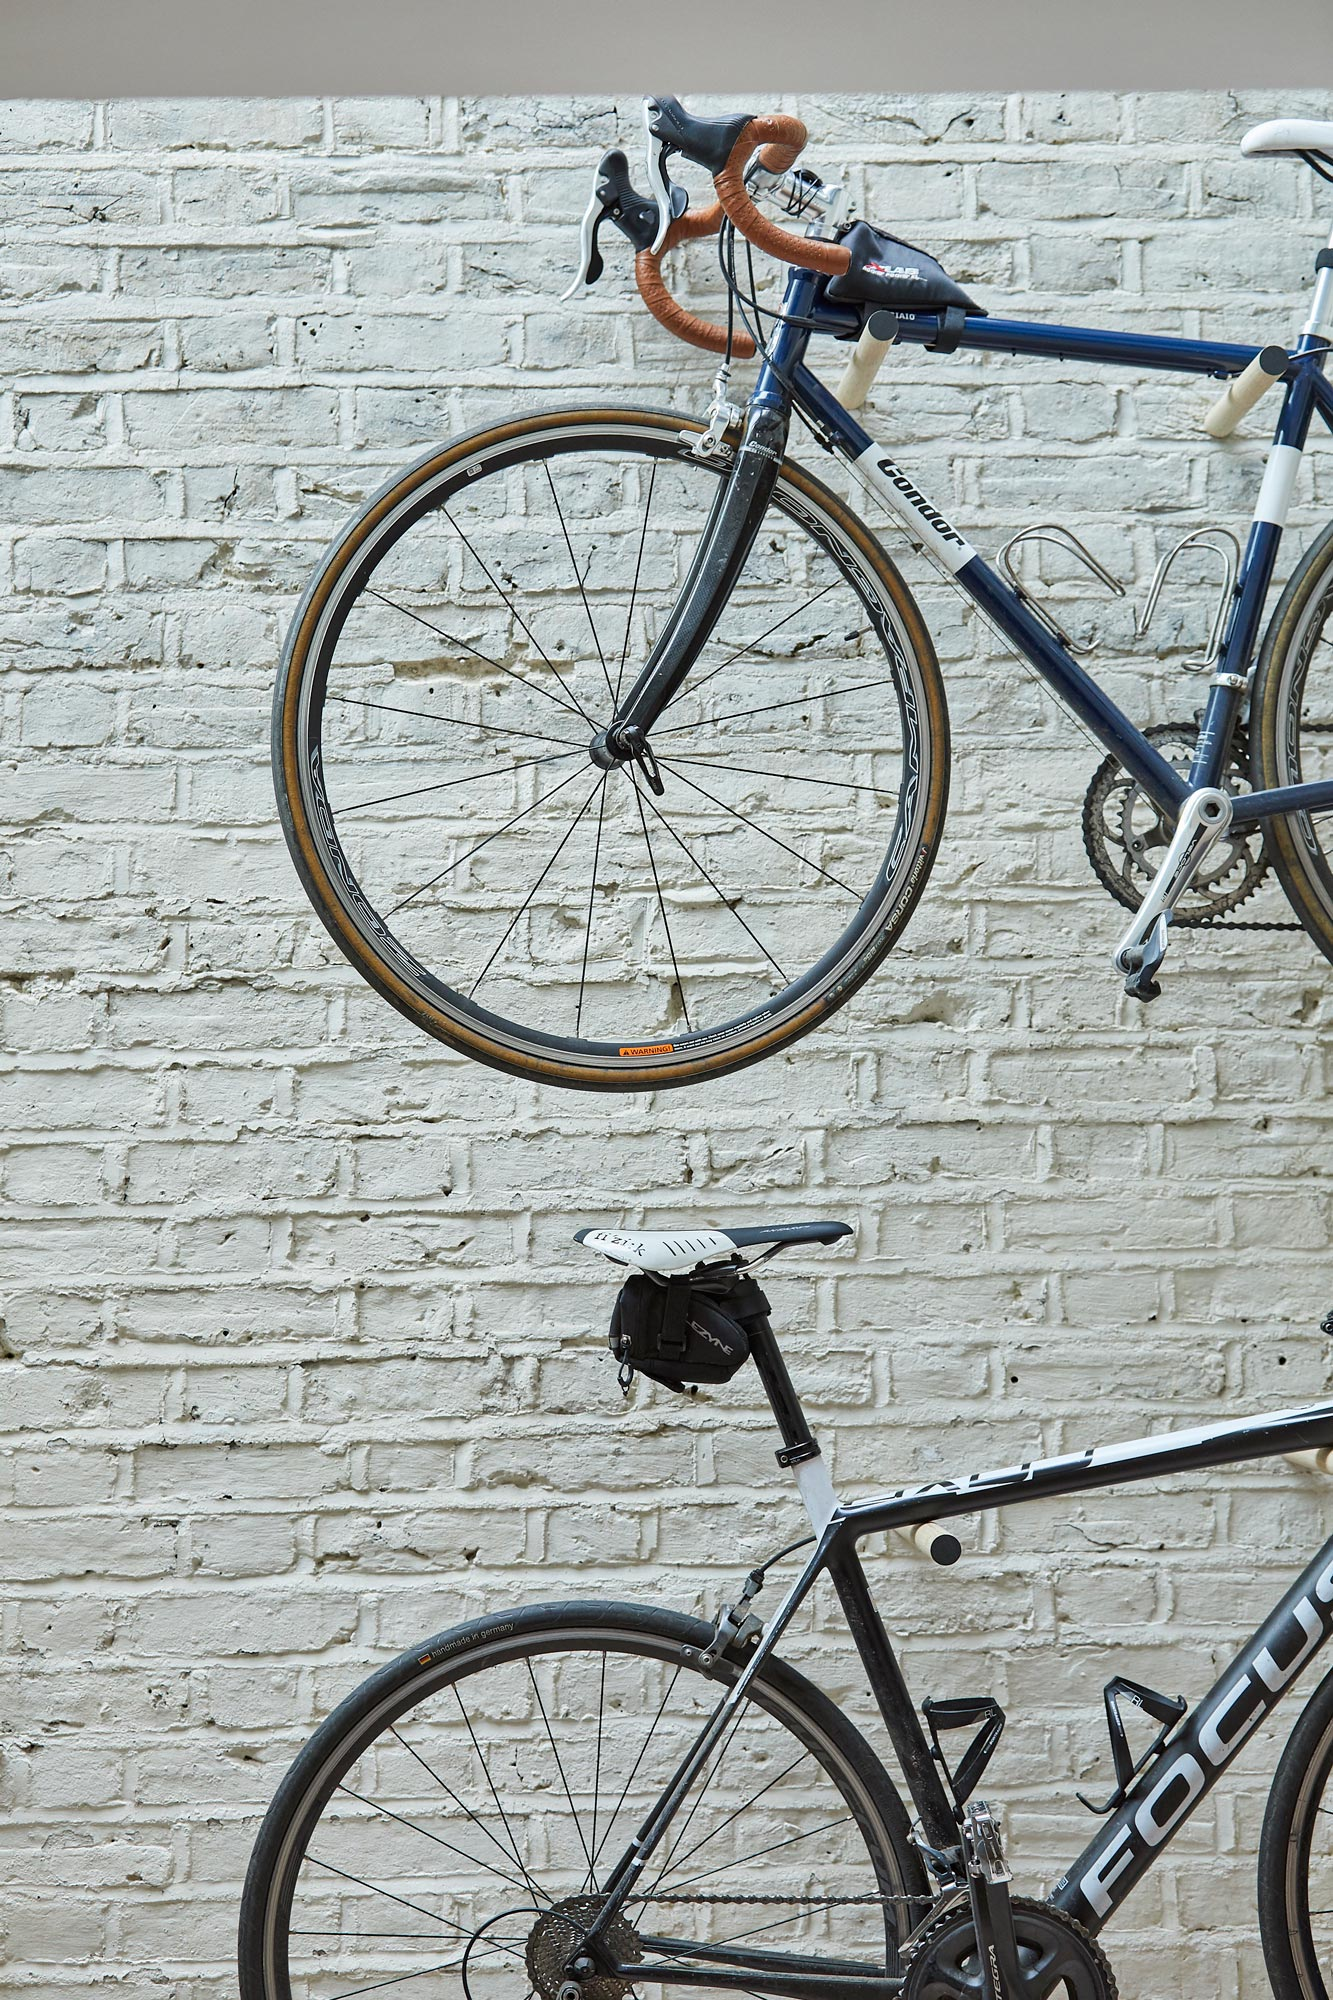 Bikes stored on painted white brick wall